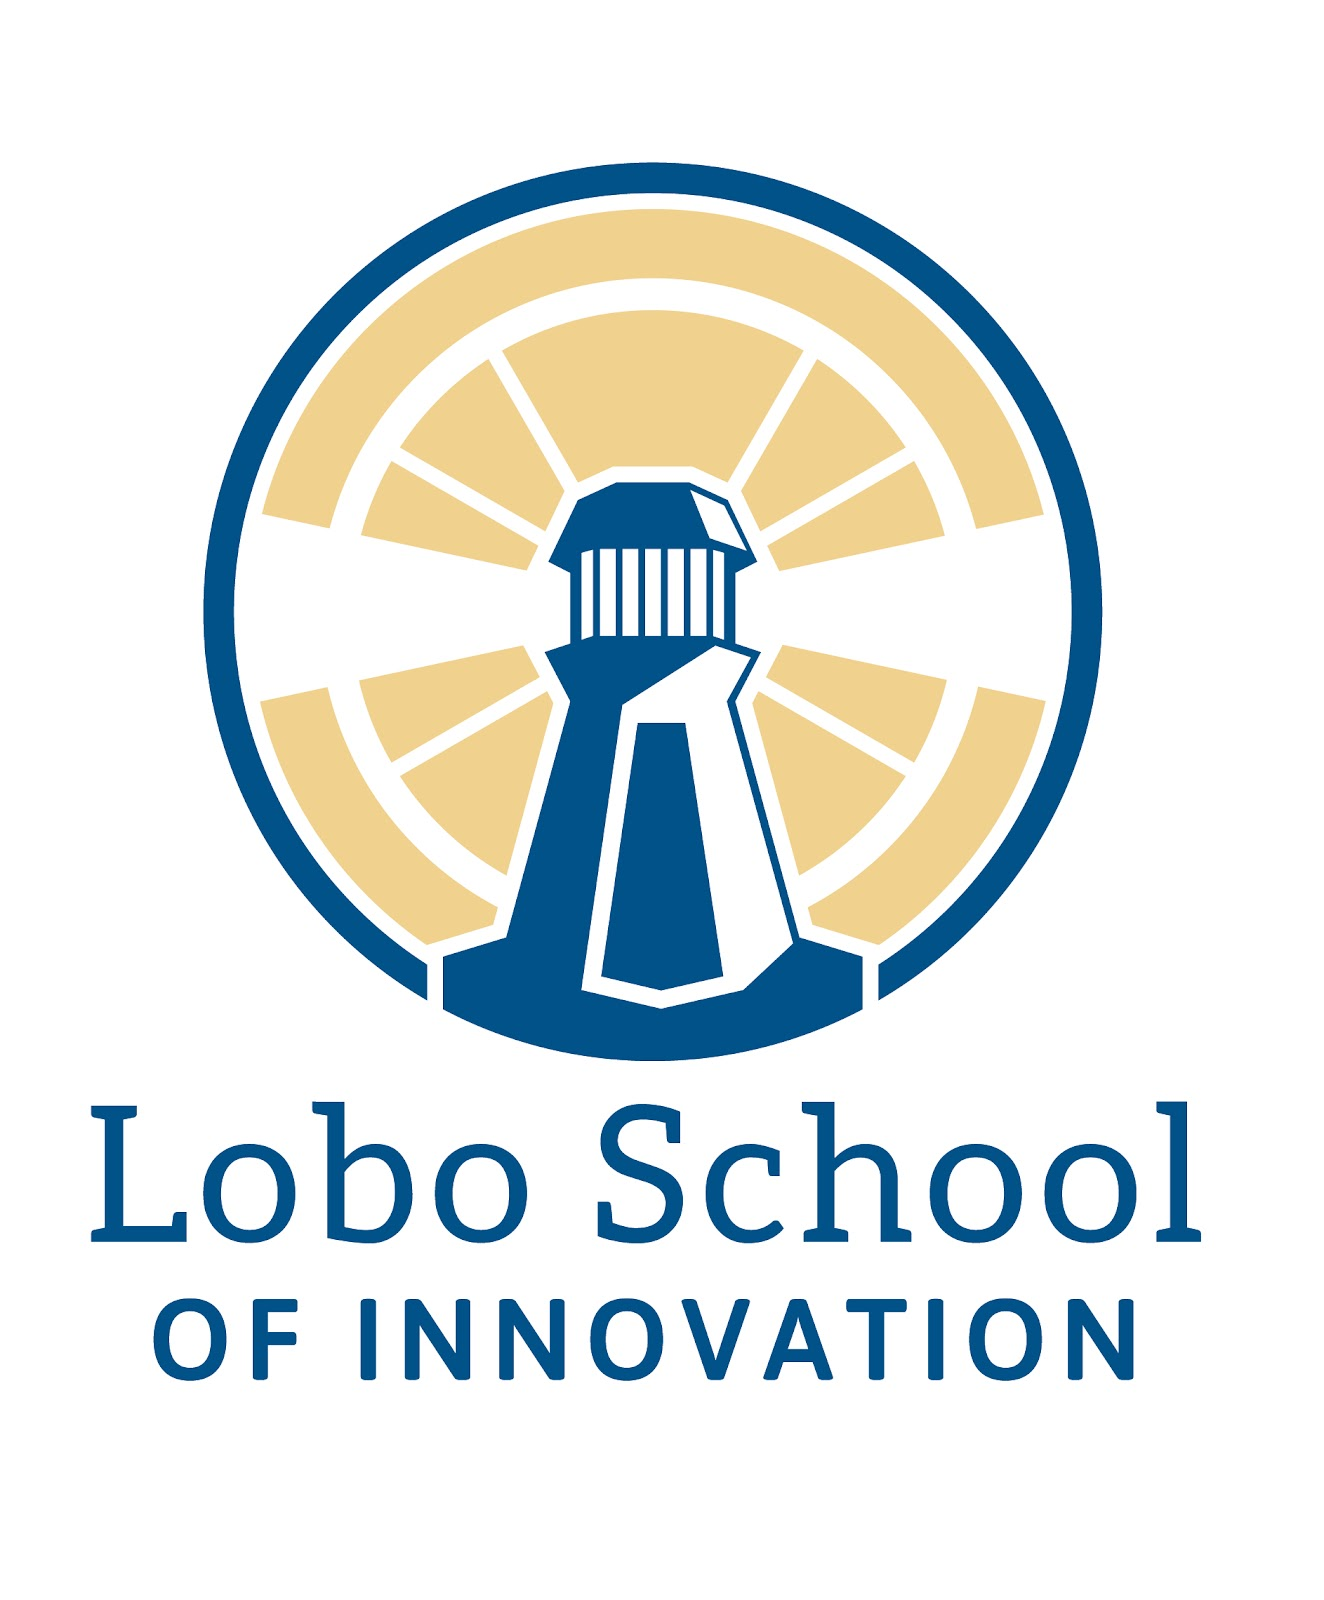 Lobo School of Innovation Logo